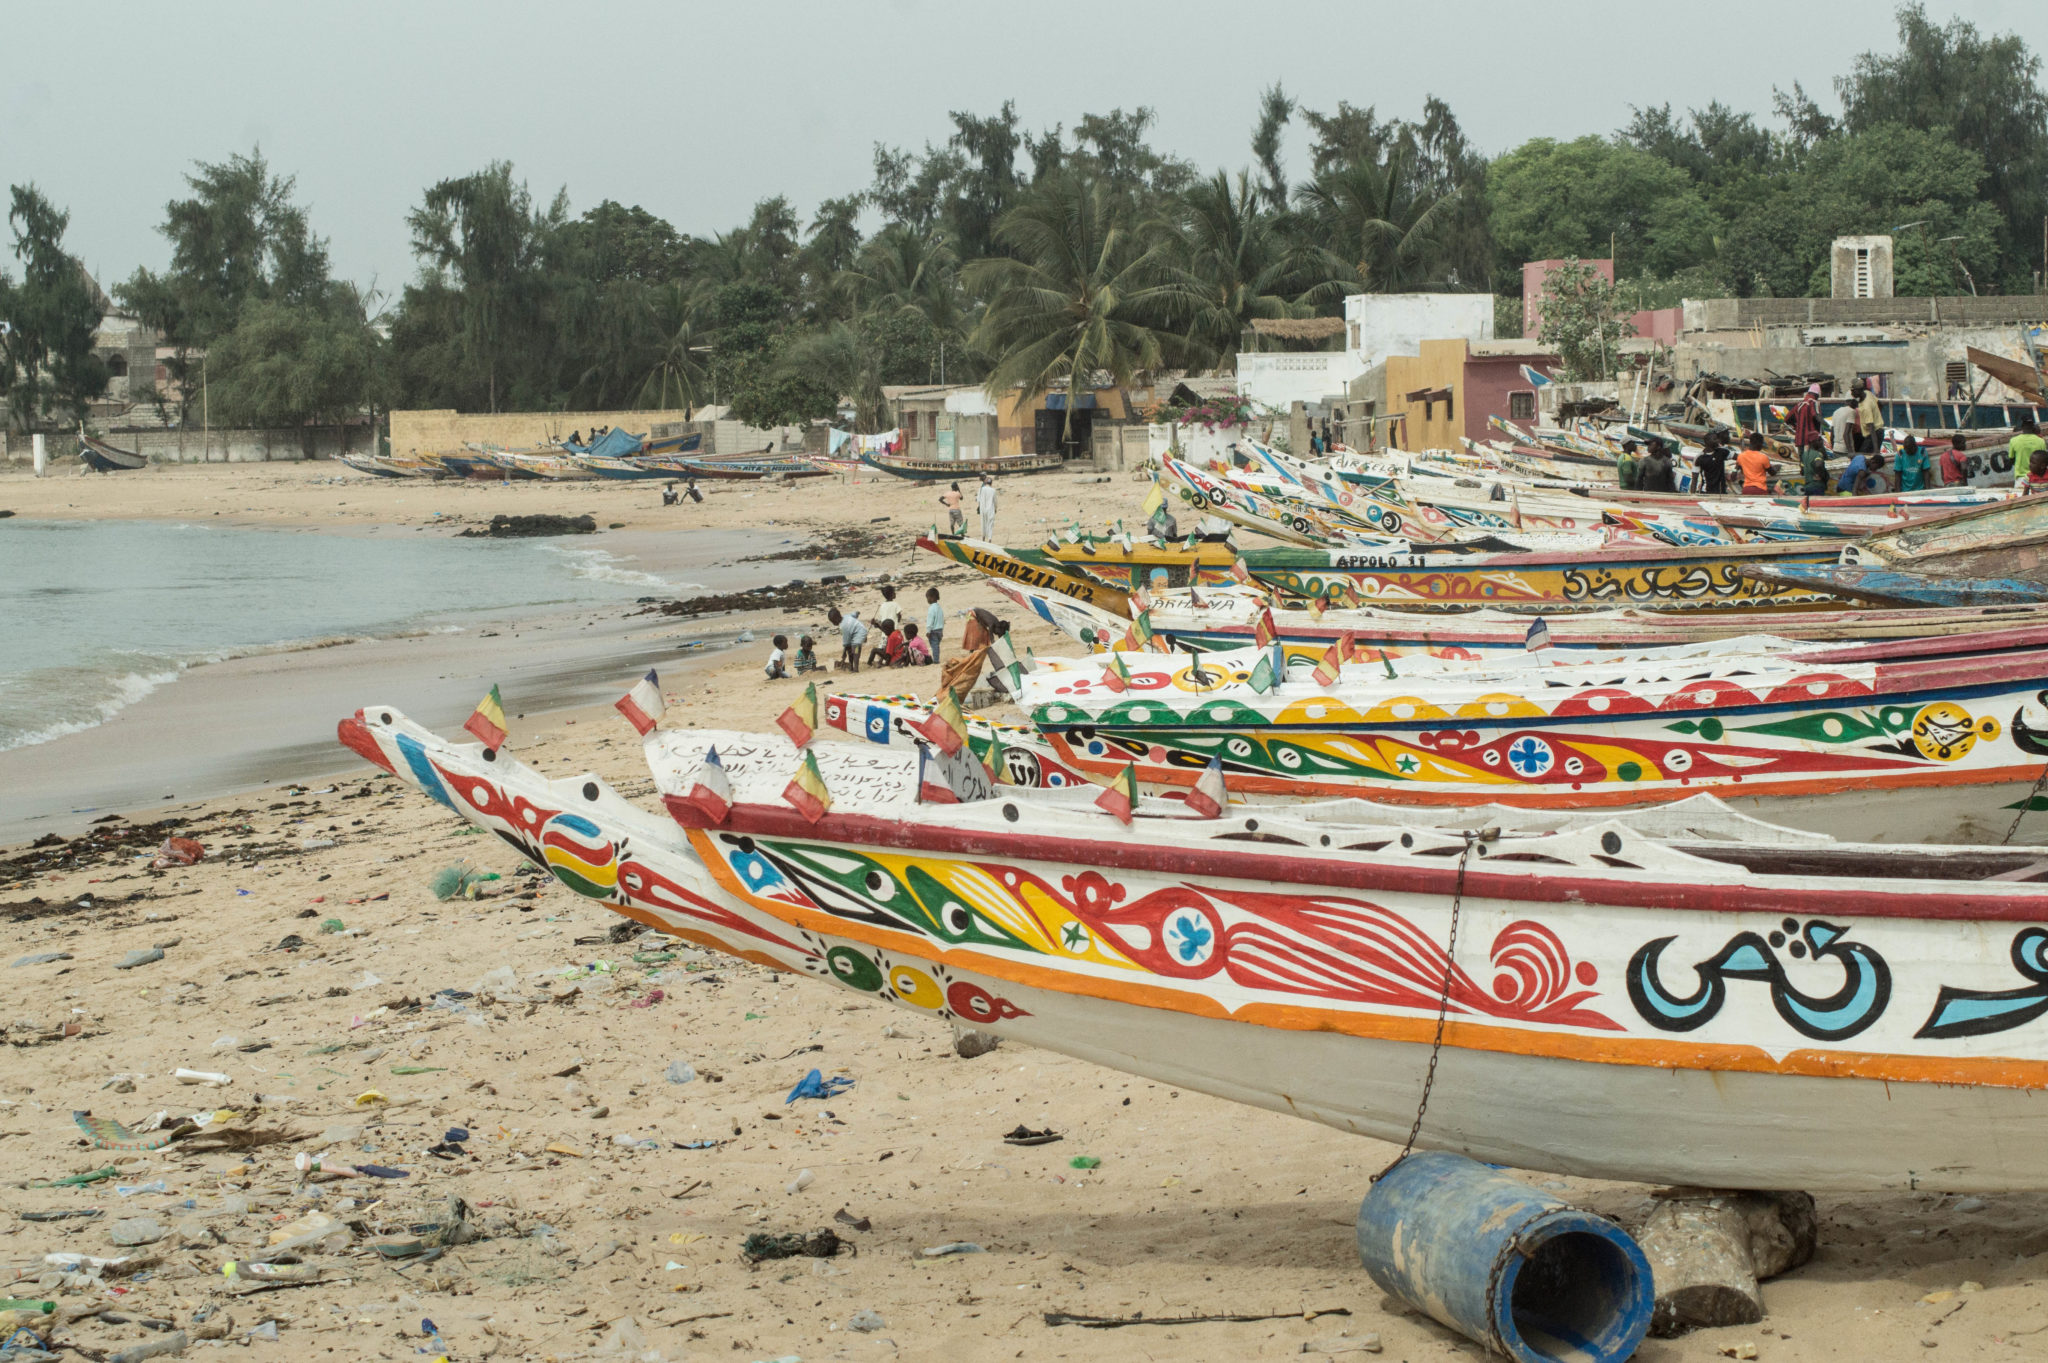 Senegal Travel Advice: The colourful pirogues in Mbour are a true landmark